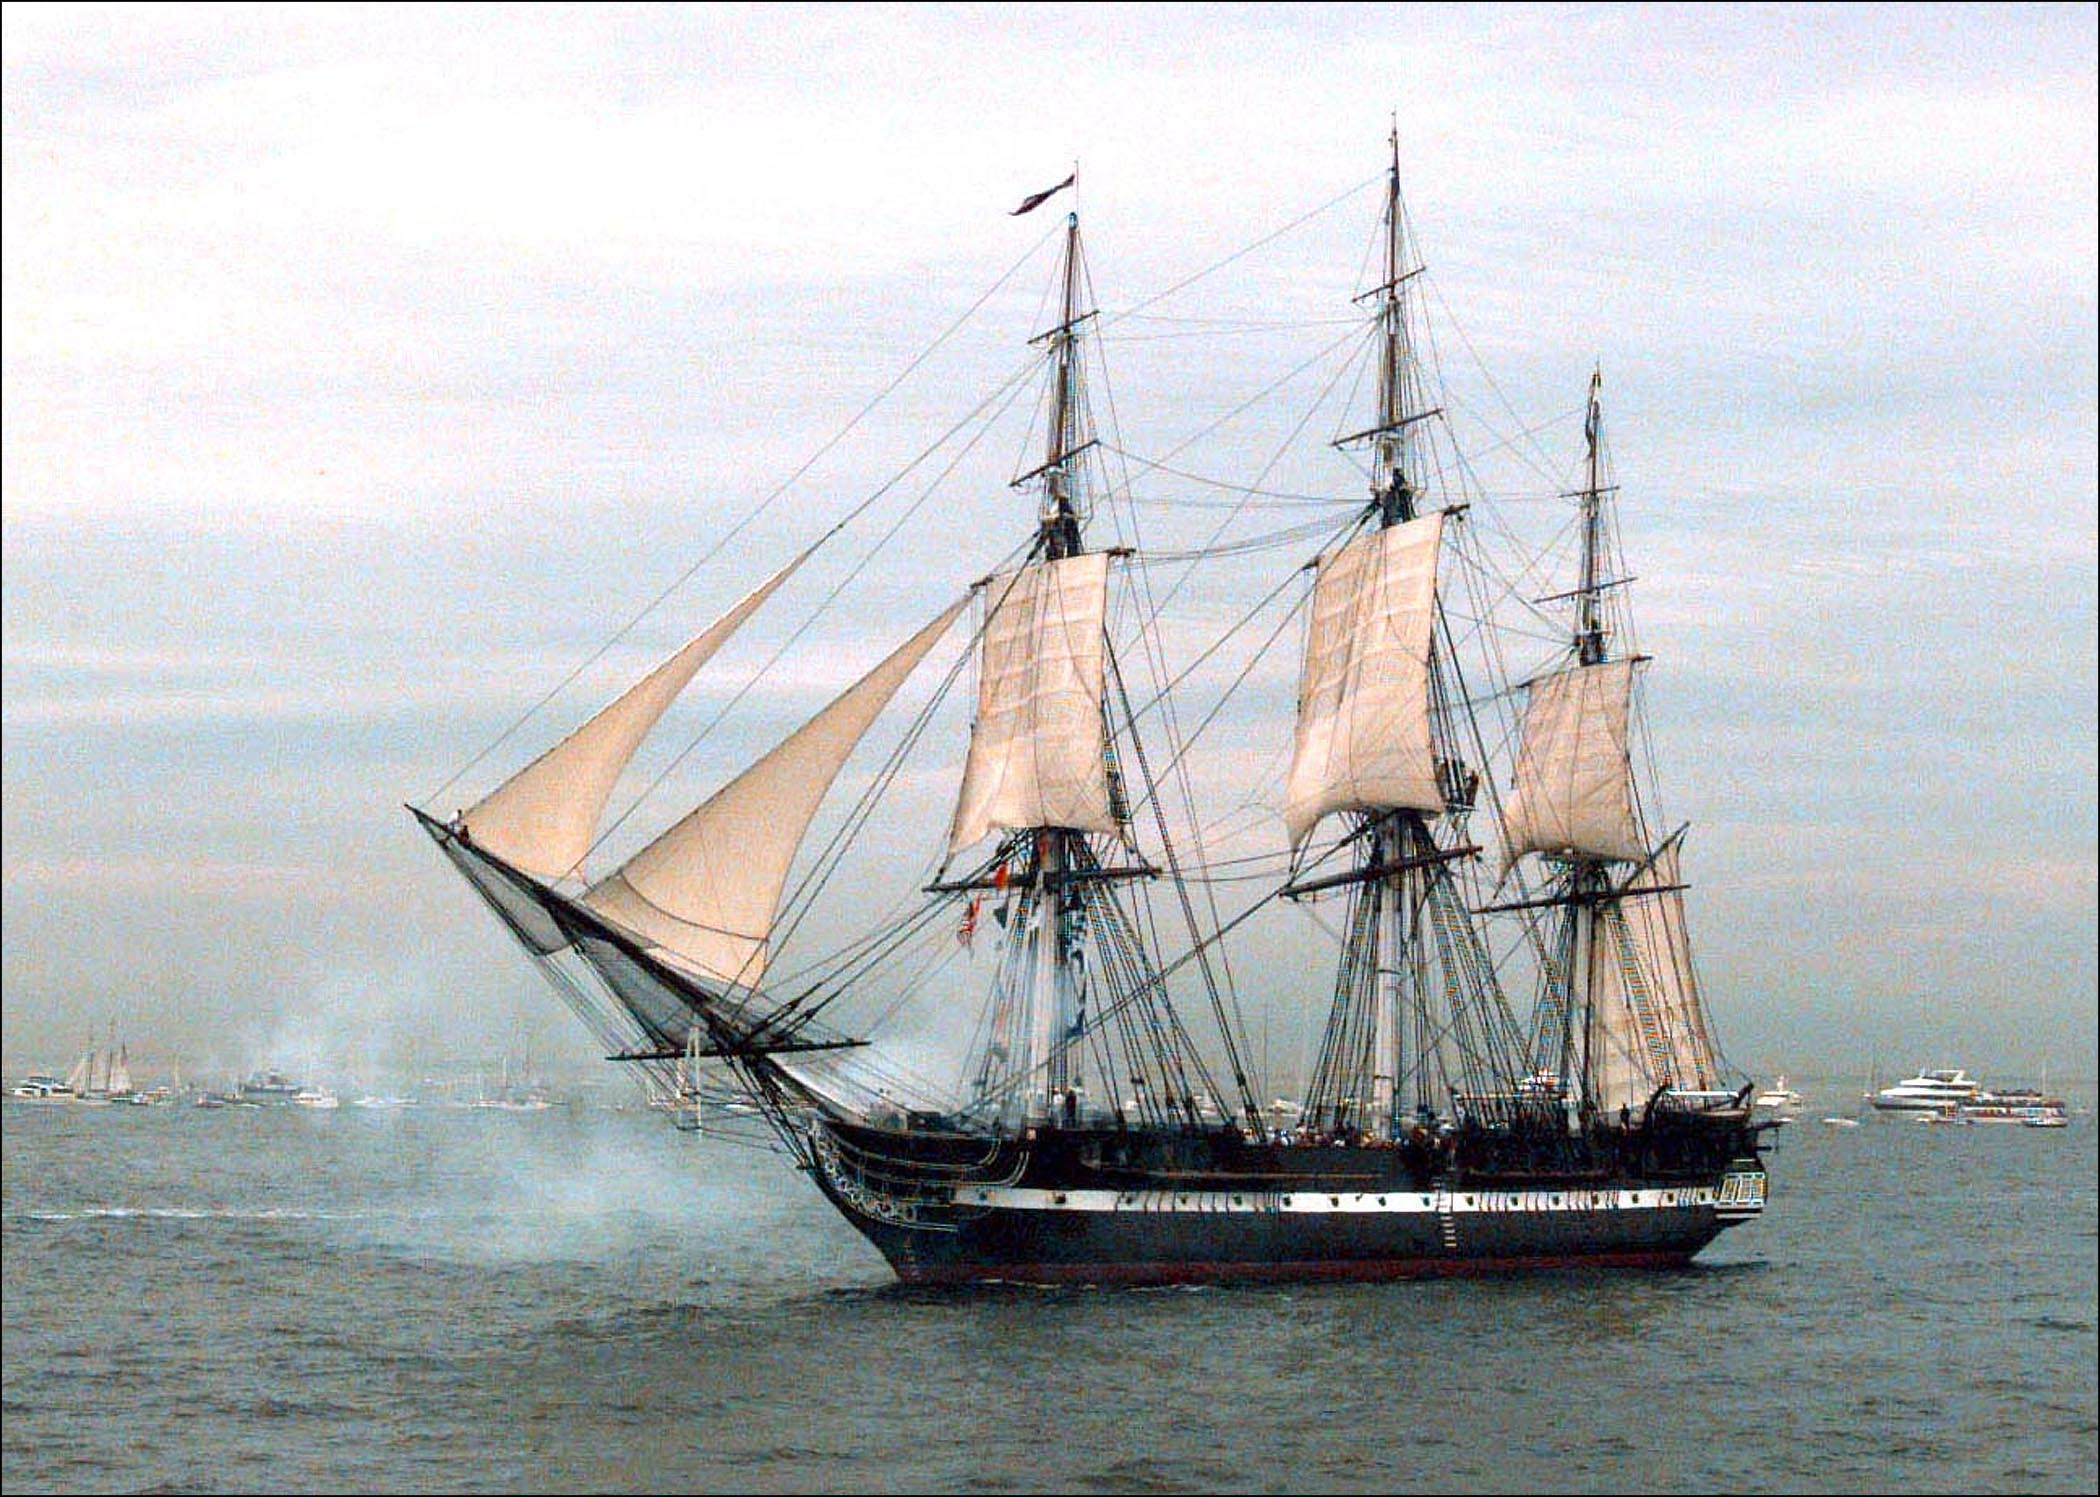 Uss Constitution Fires Its Starboard Guns. | Free Images ...